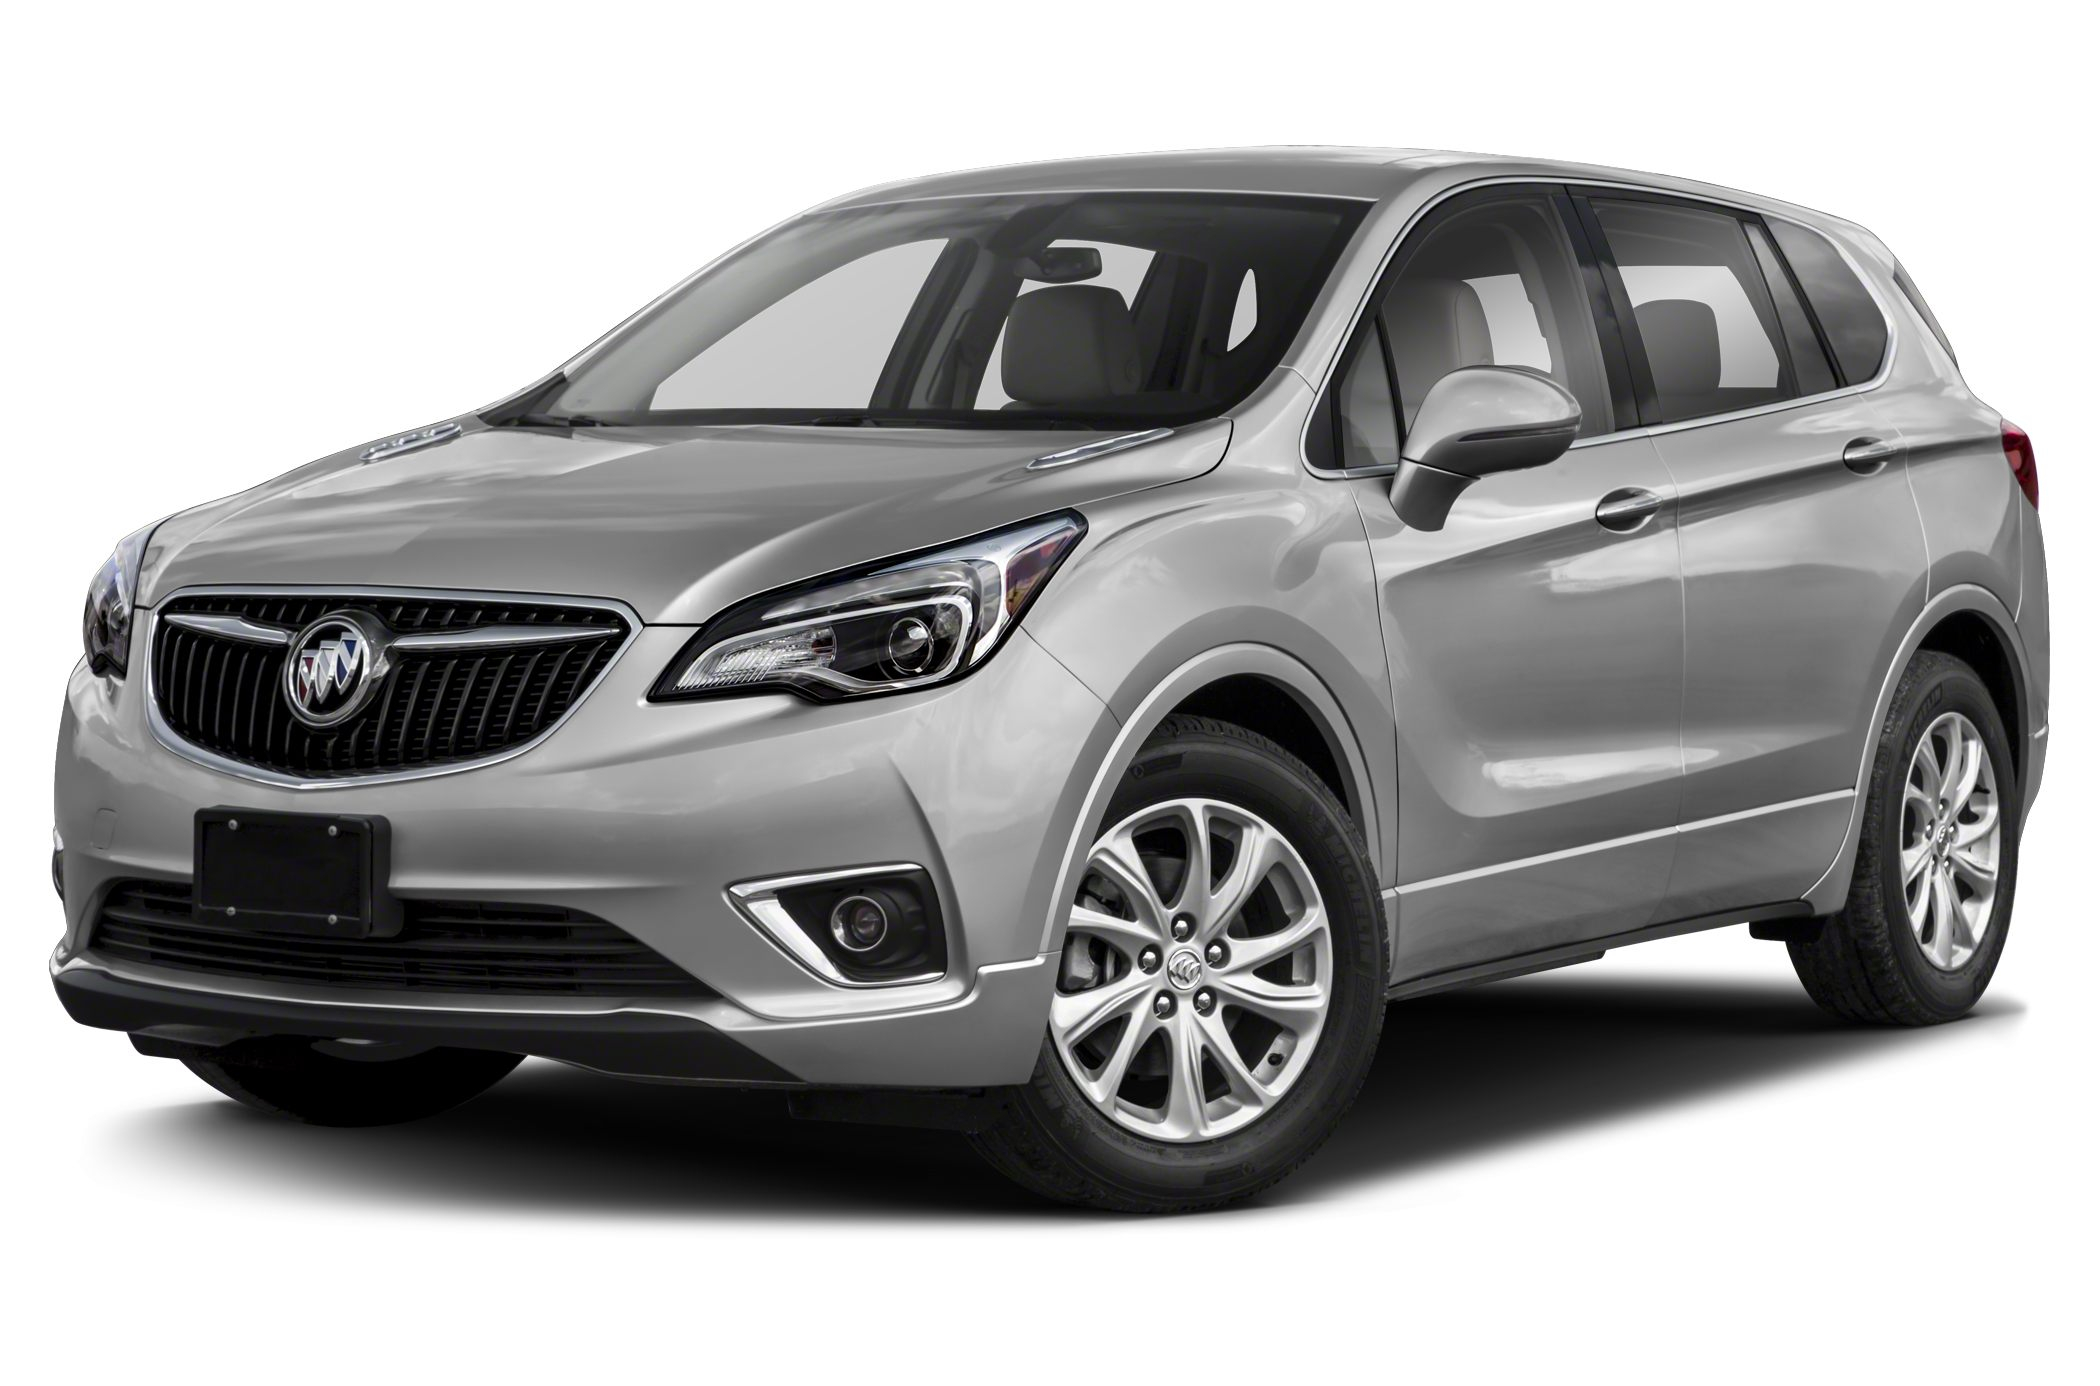 2020 Buick Envision Specs And Prices New 2021 Buick Envision Lease Deals, Interior Dimensions, Engine